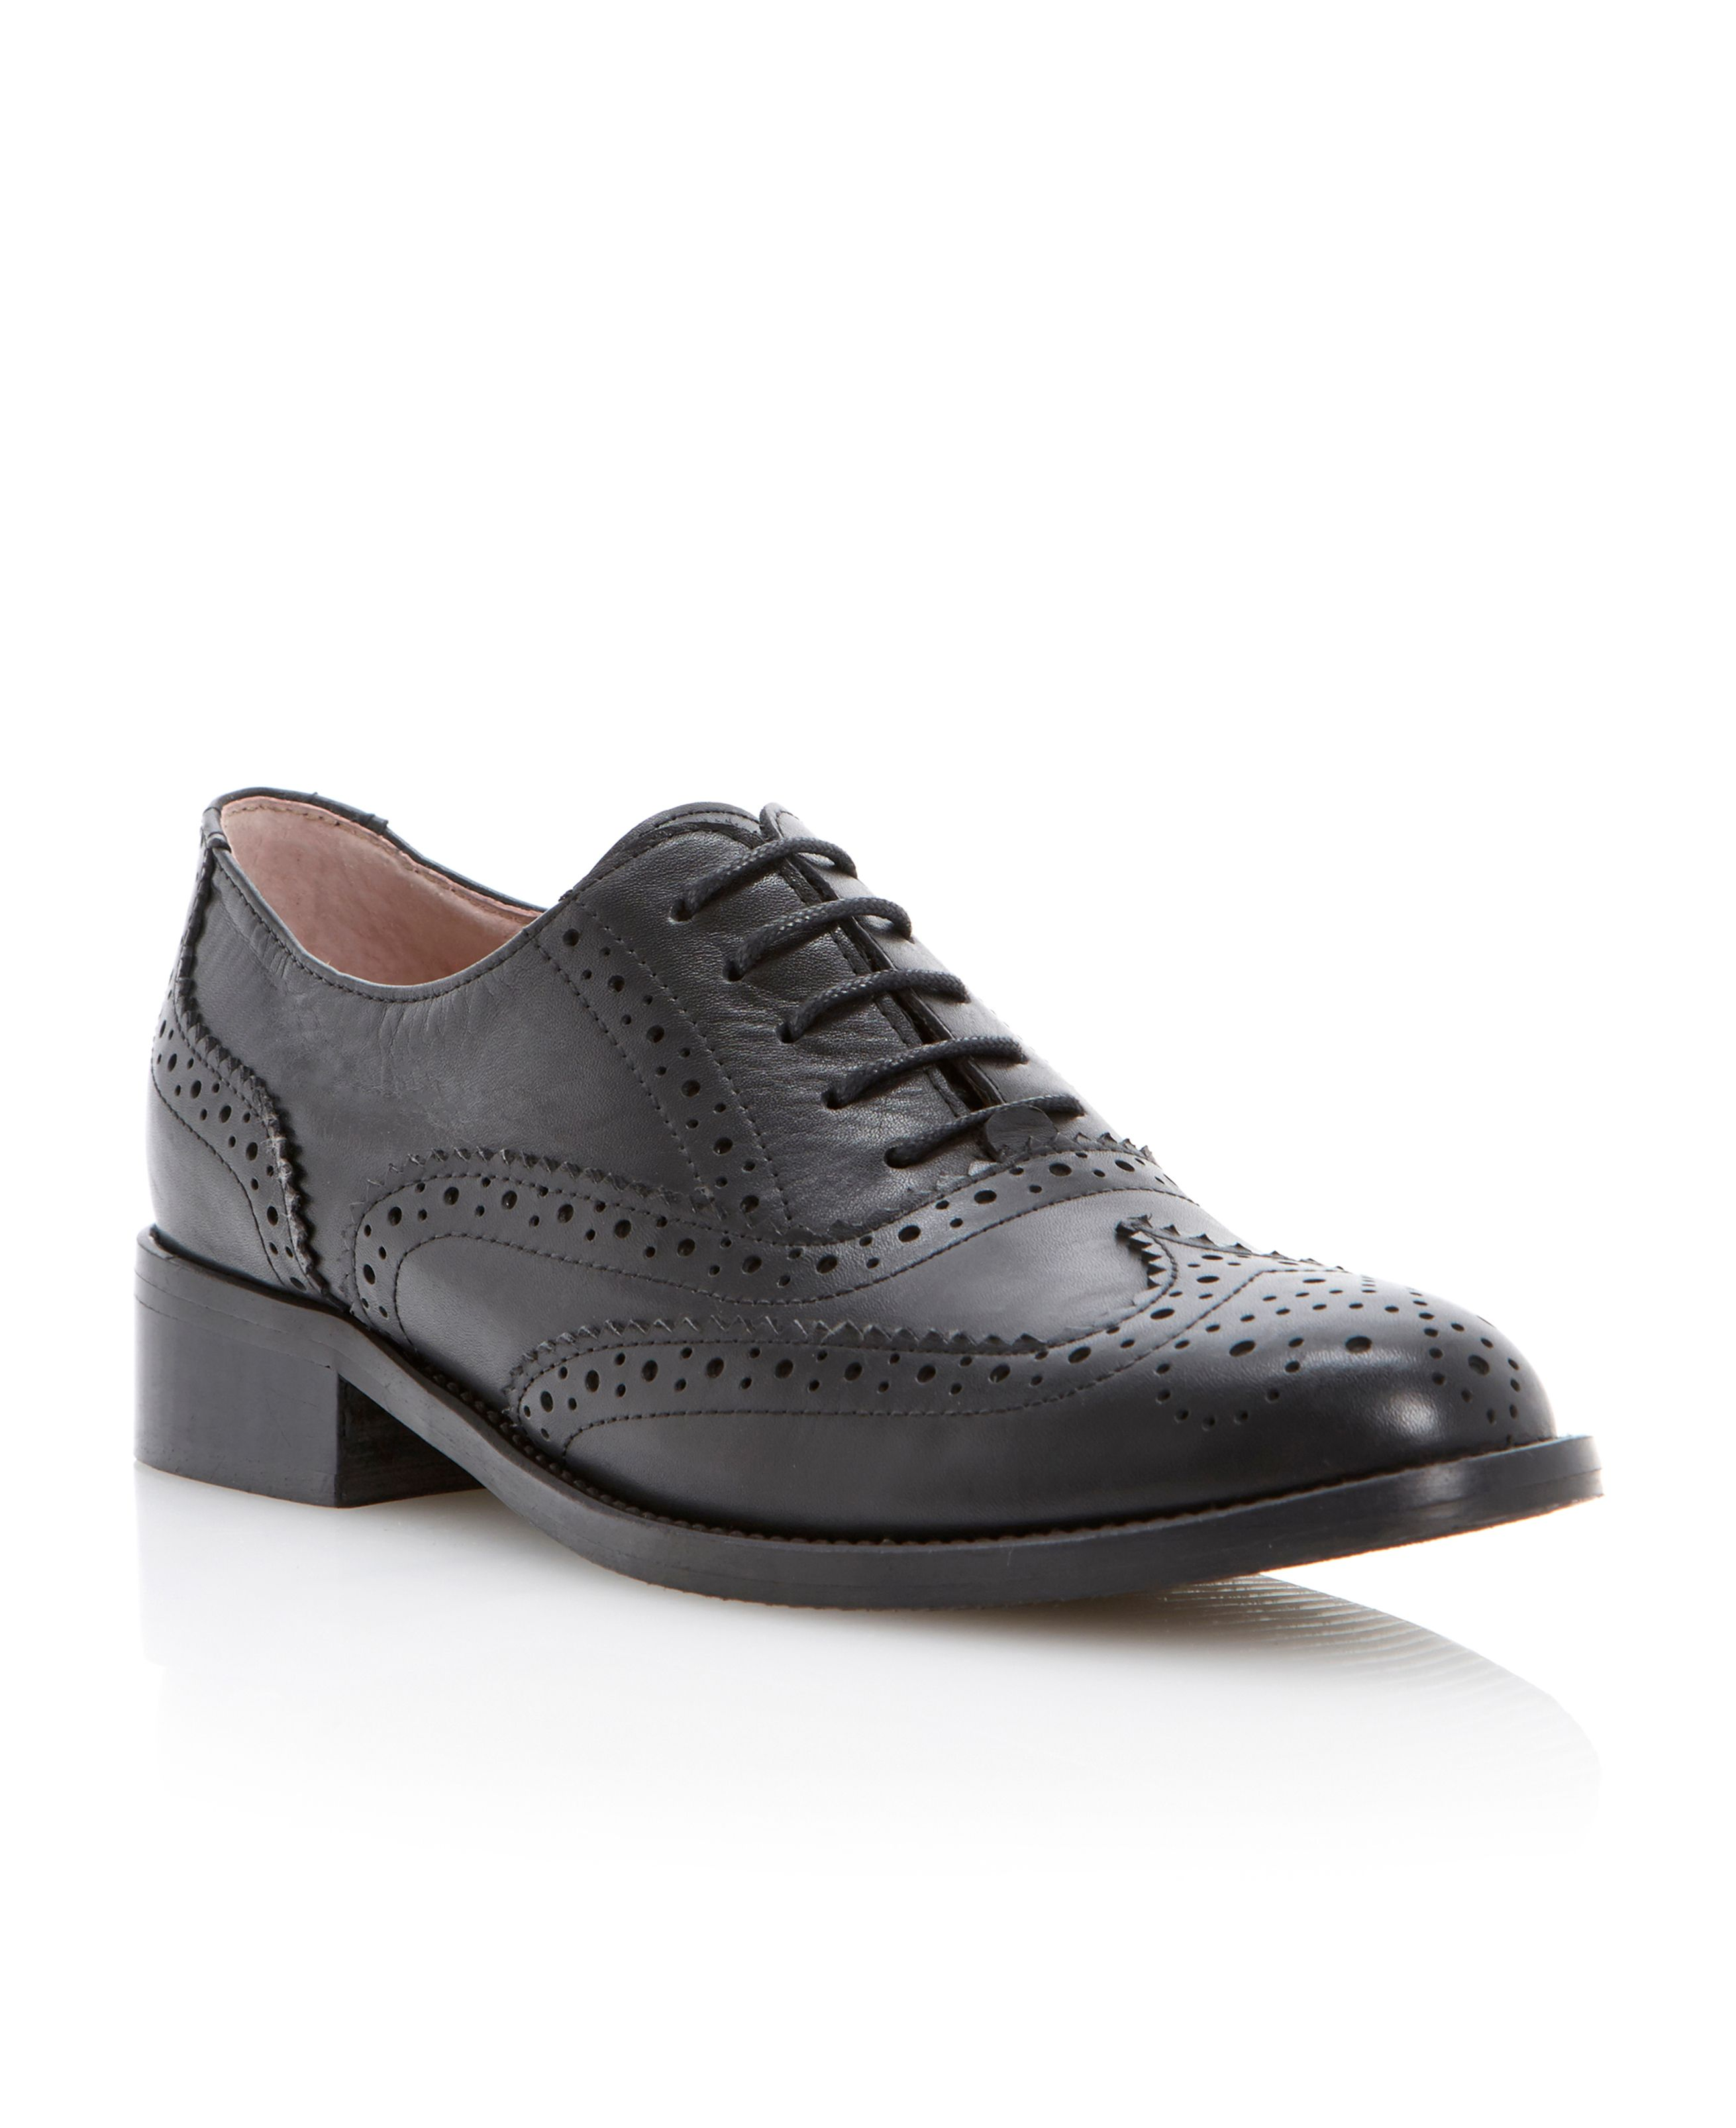 Pied A Terre Hoxley Lace Up Brogue Shoes In Black Black